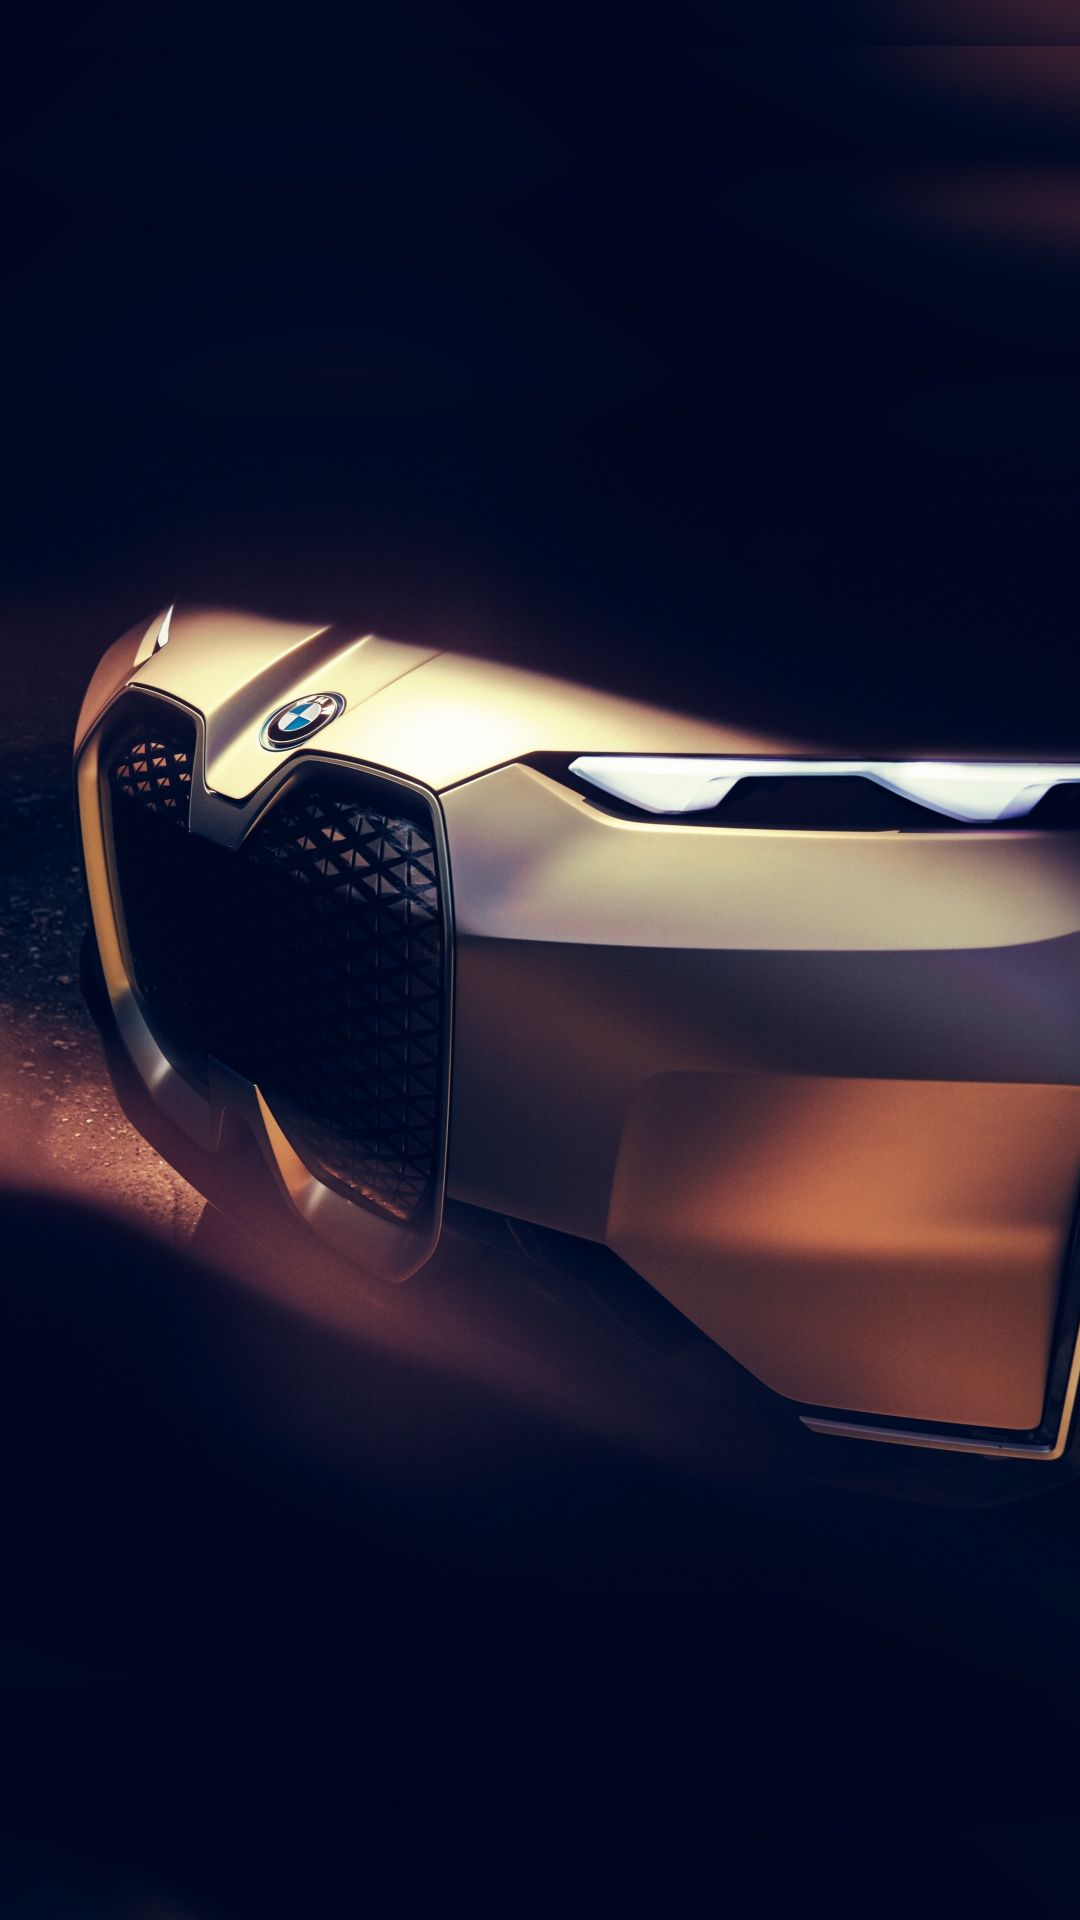 Bmw Vision Next 100 Headlight Electric Car 1080x1920 Wallpaper